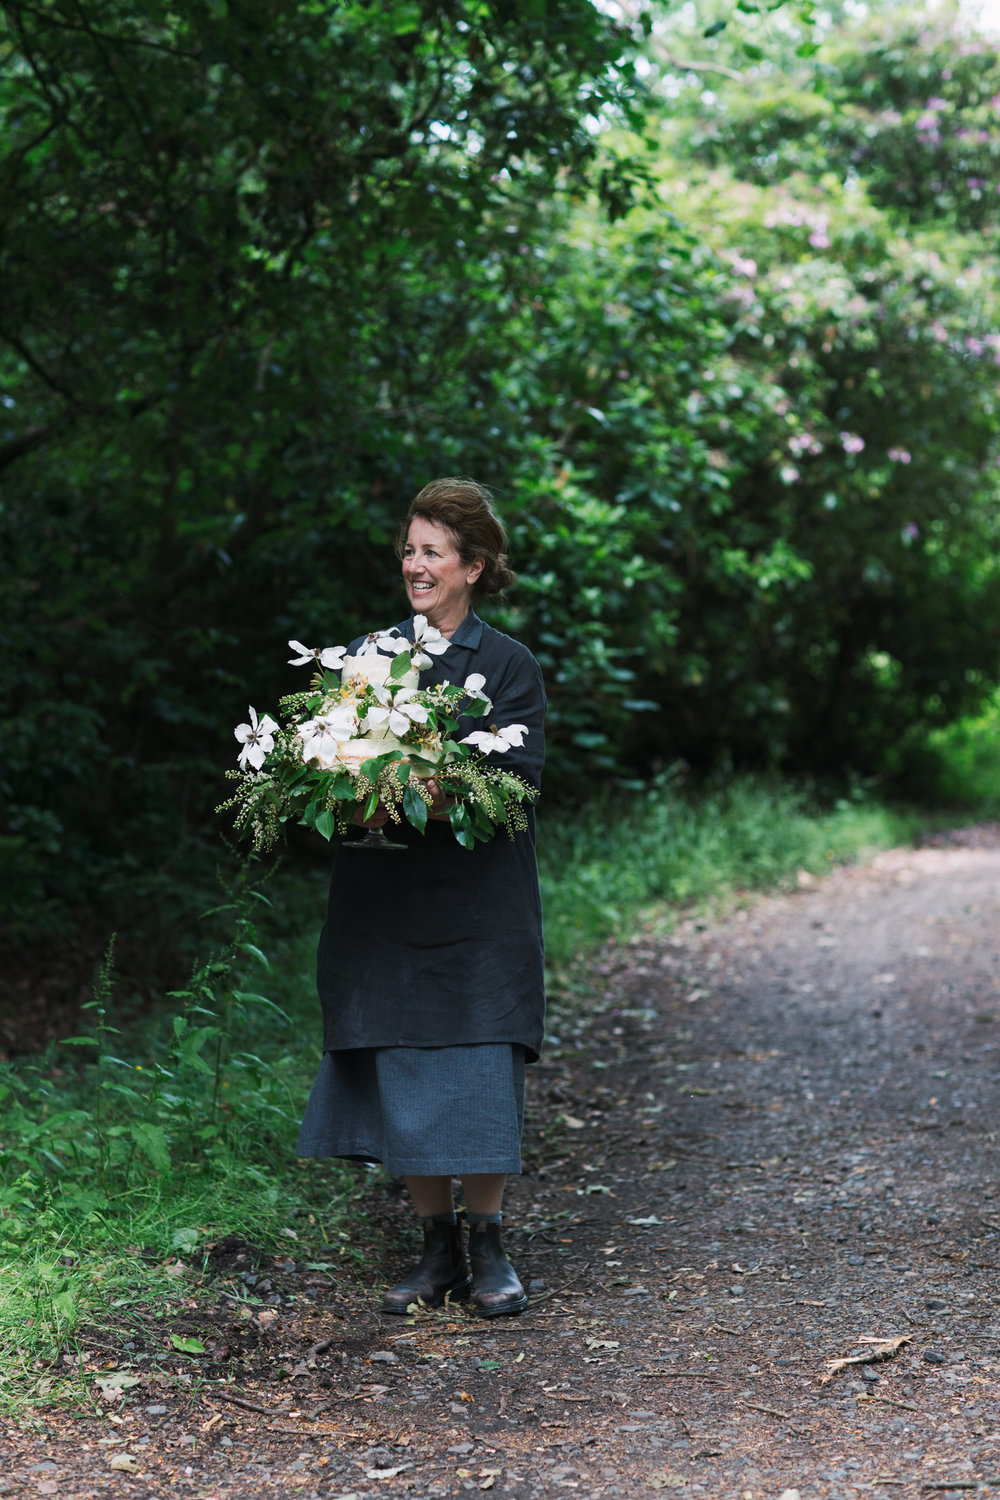 And the cake maker, carrying the cake to the wedding marquee